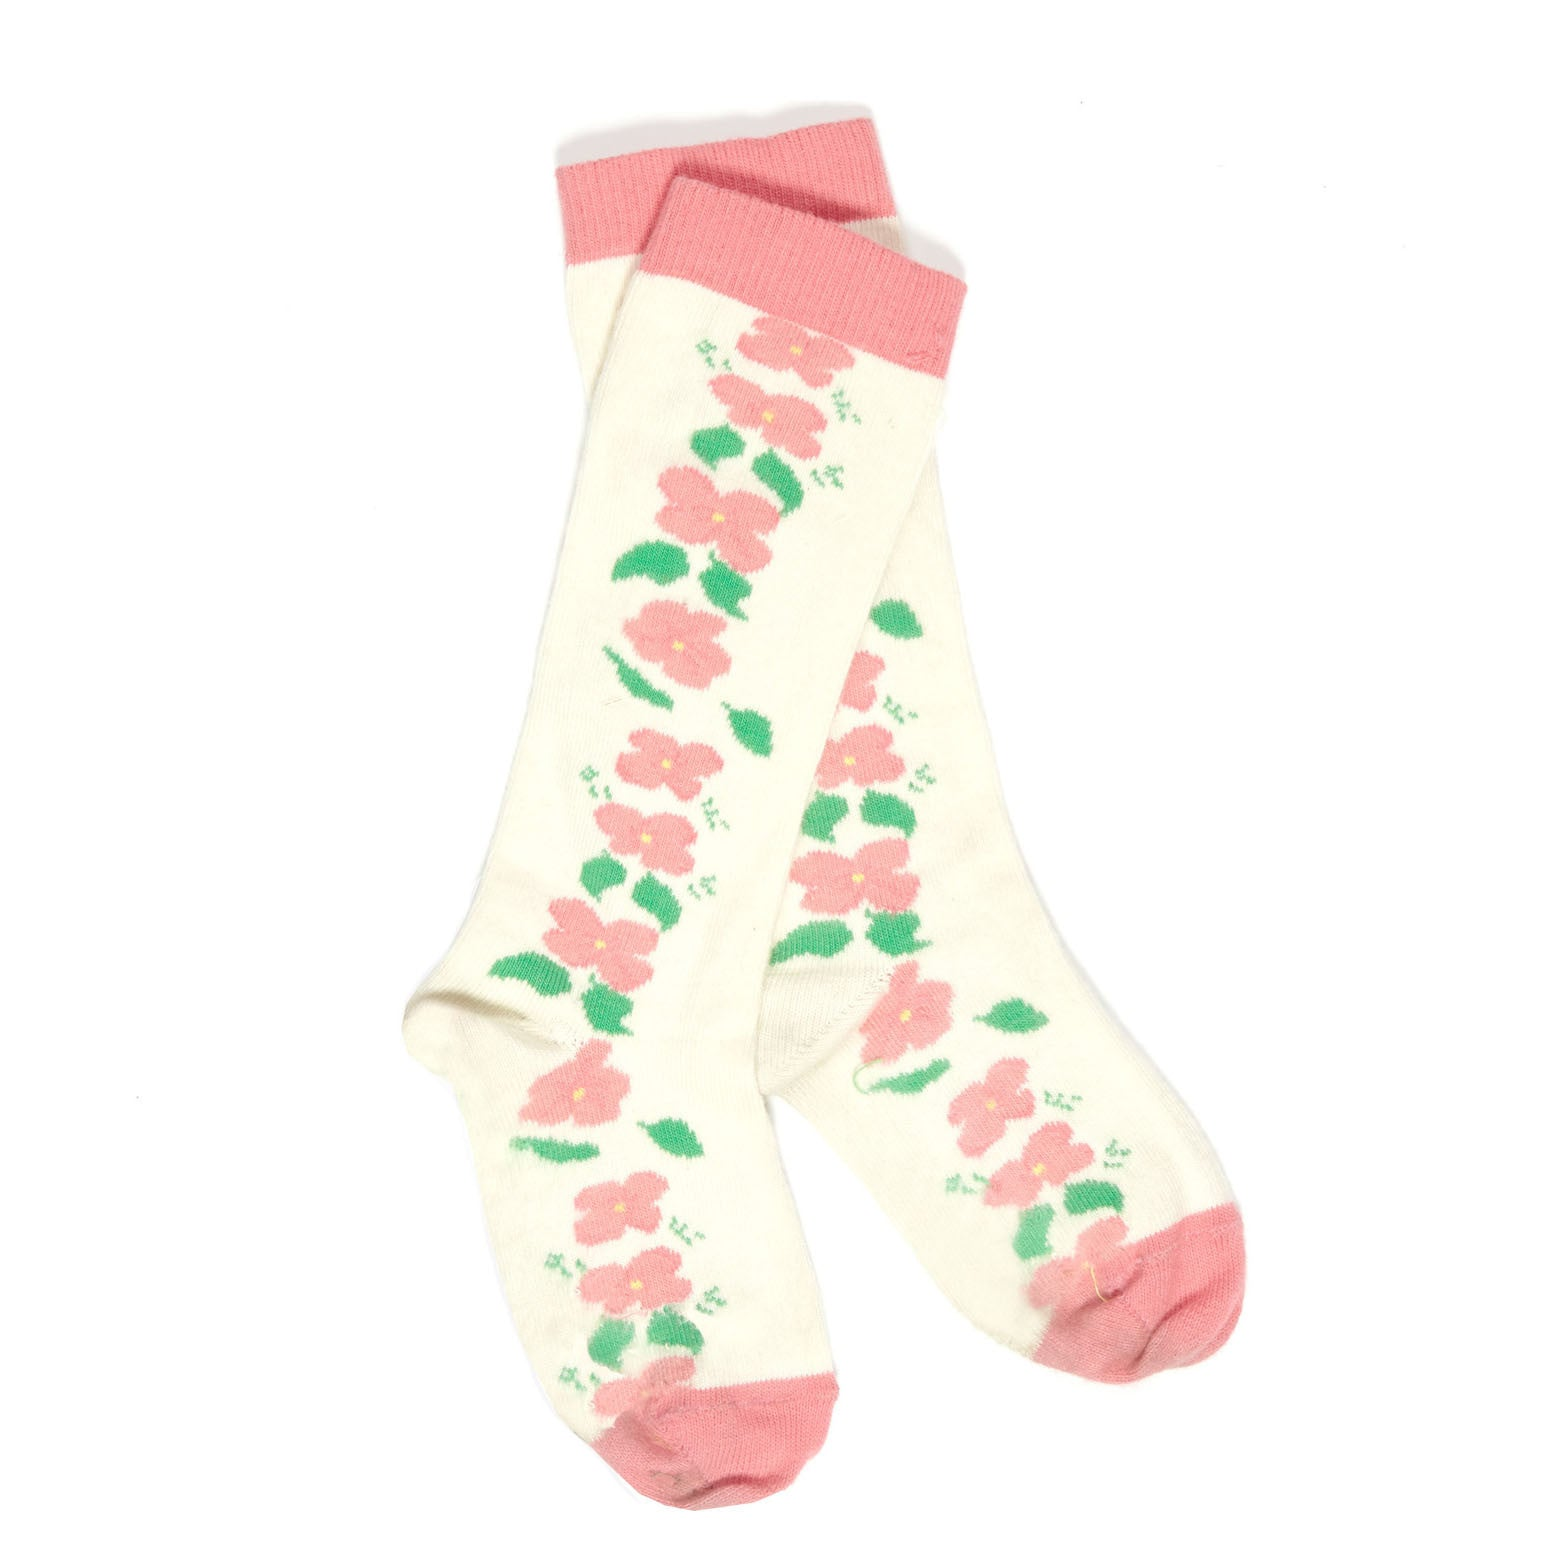 Children's Socks - Cream Floral - Palava